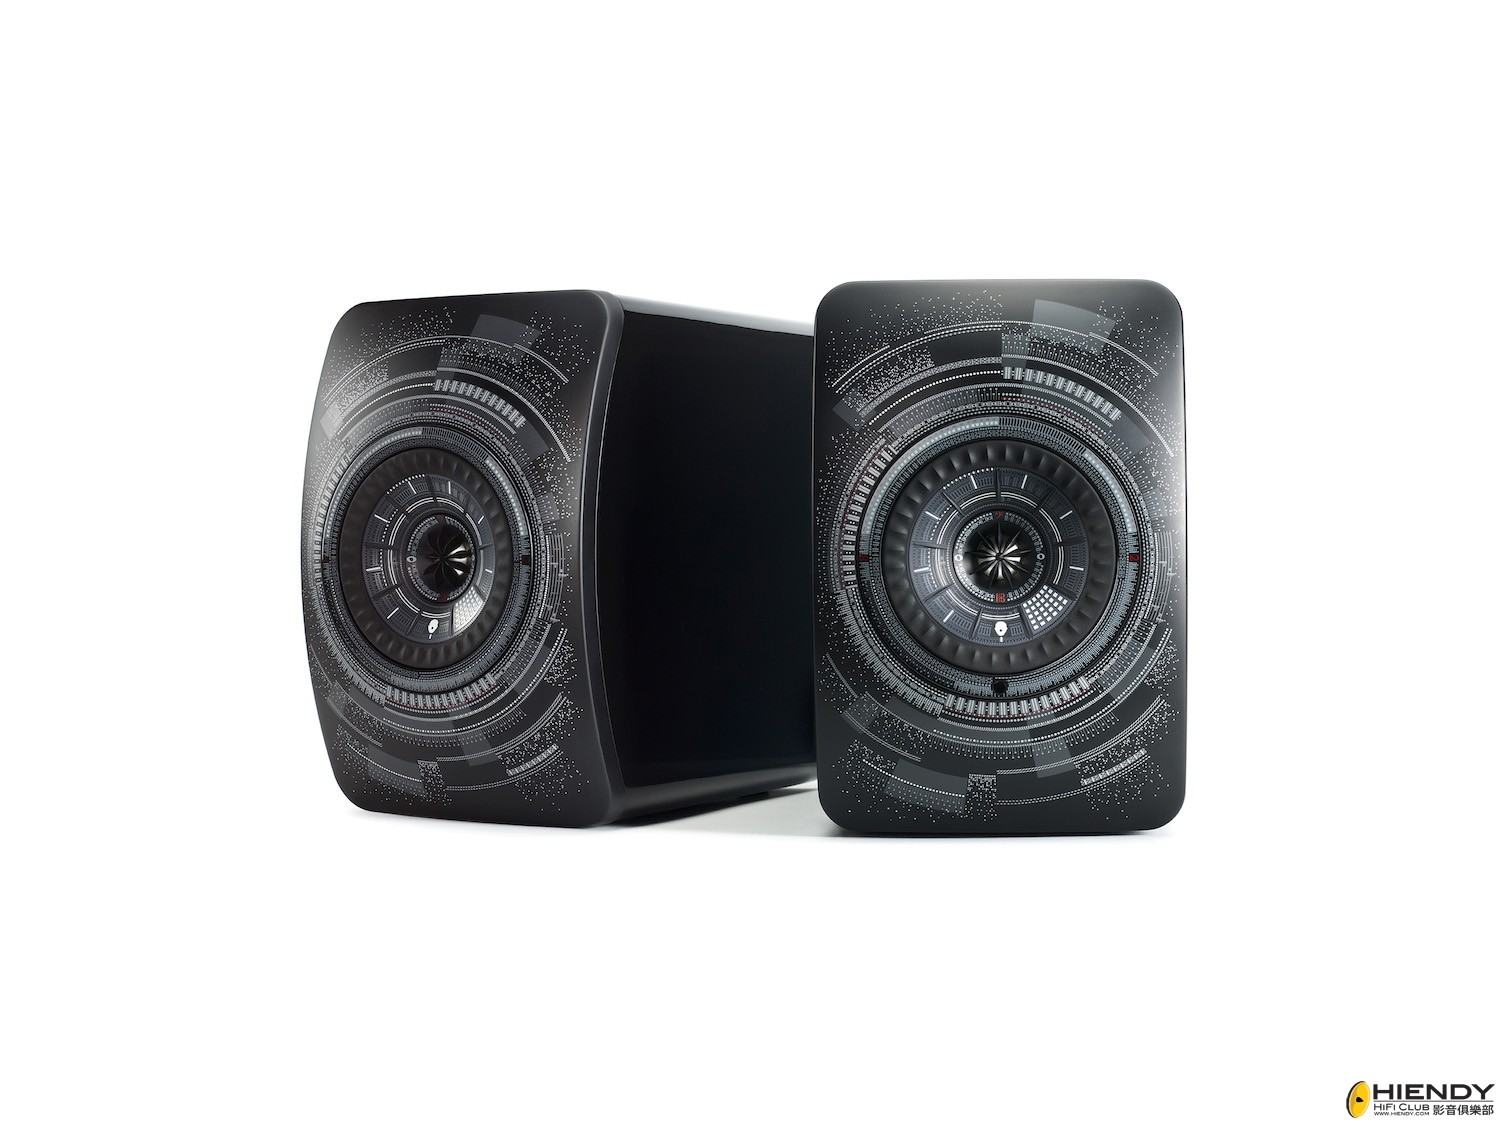 【LS50 Wireless 'Nocturne' by Marcel Wanders】 - 兩聲道音響討論區 - Hiendy.com 影音俱樂部 - Powered by Discuz!